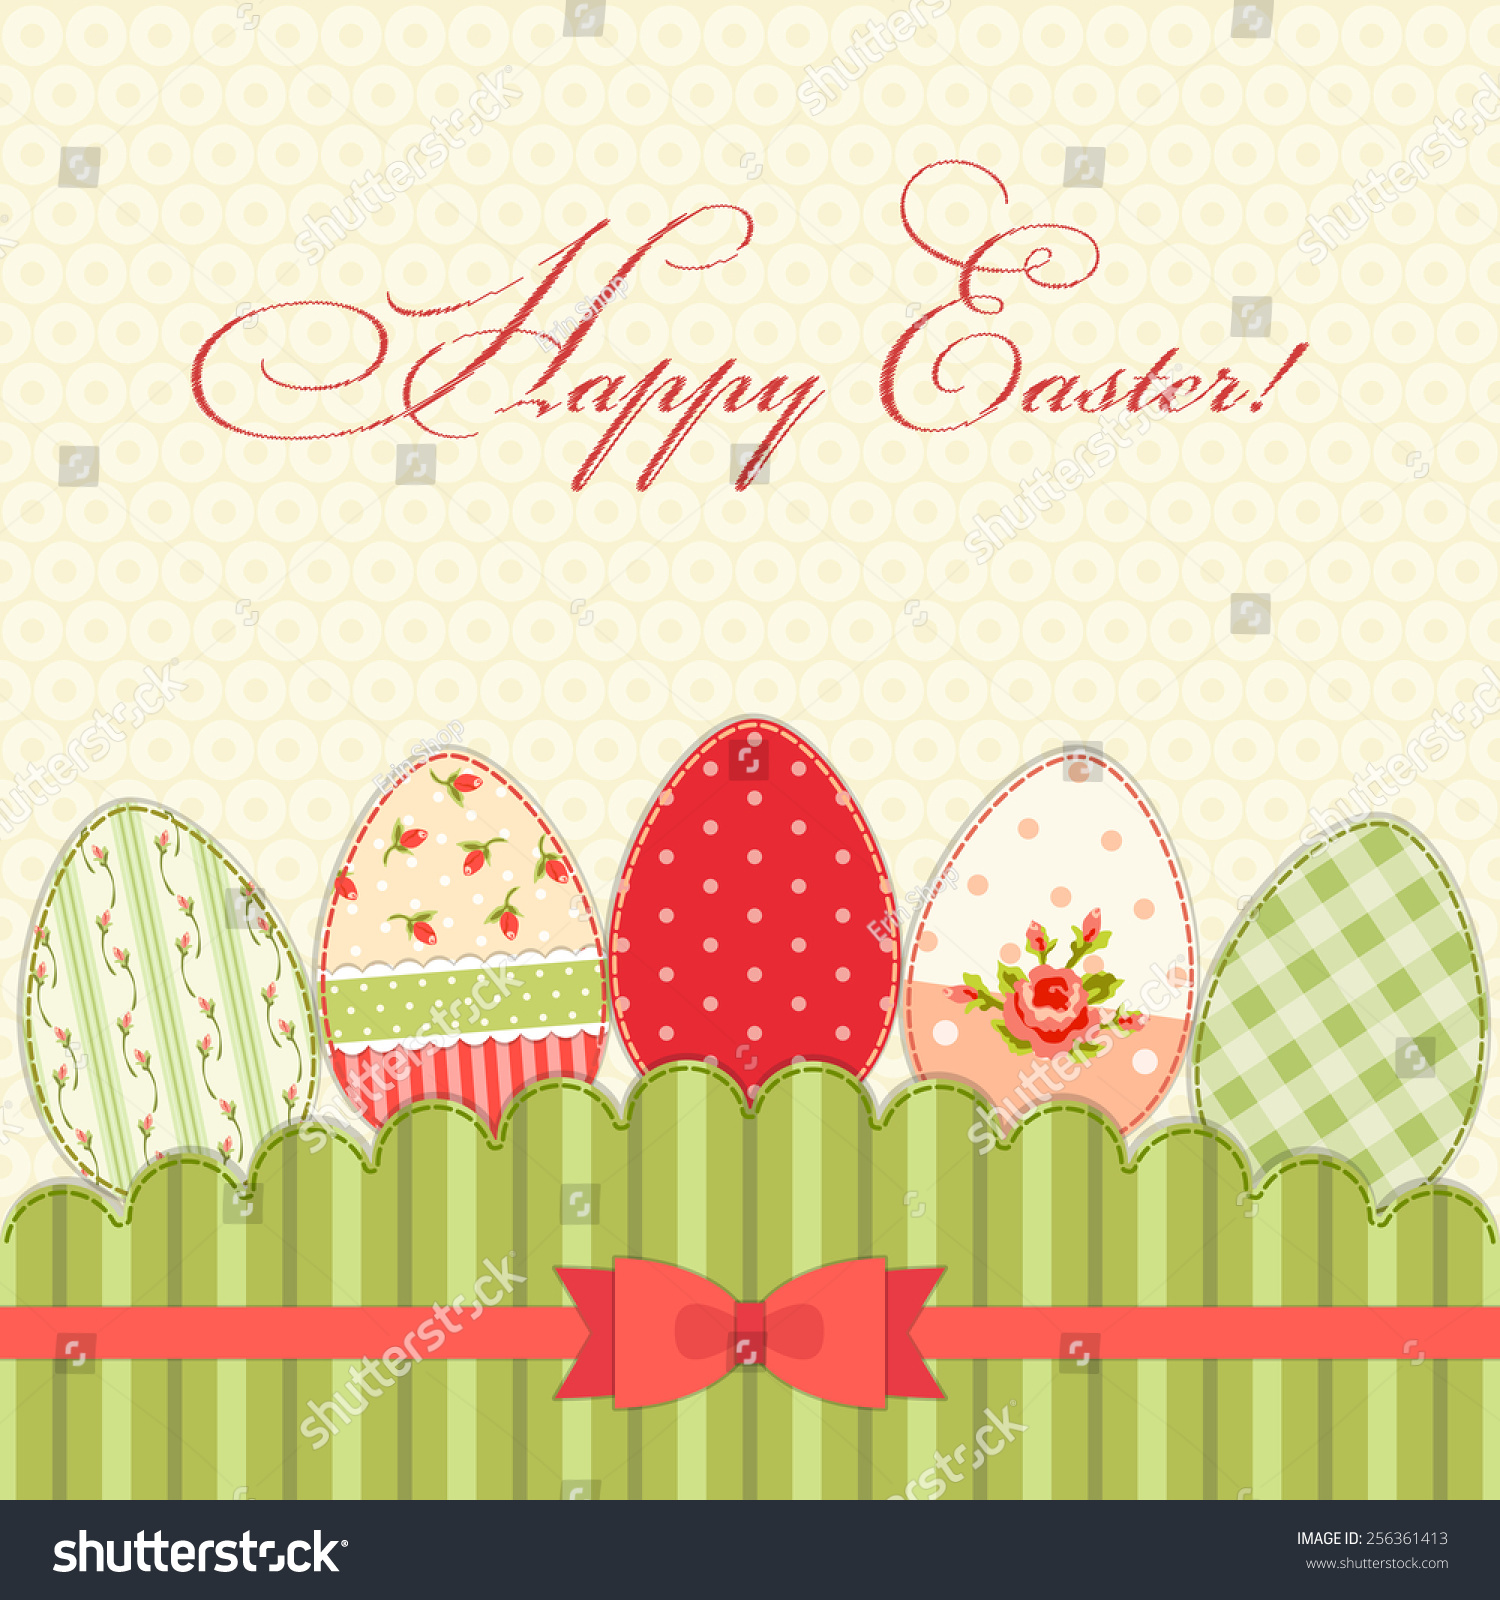 Cute vintage happy easter greeting card stock illustration 256361413 cute vintage happy easter greeting card with patch fabric applique of eggs in shabby chic style m4hsunfo